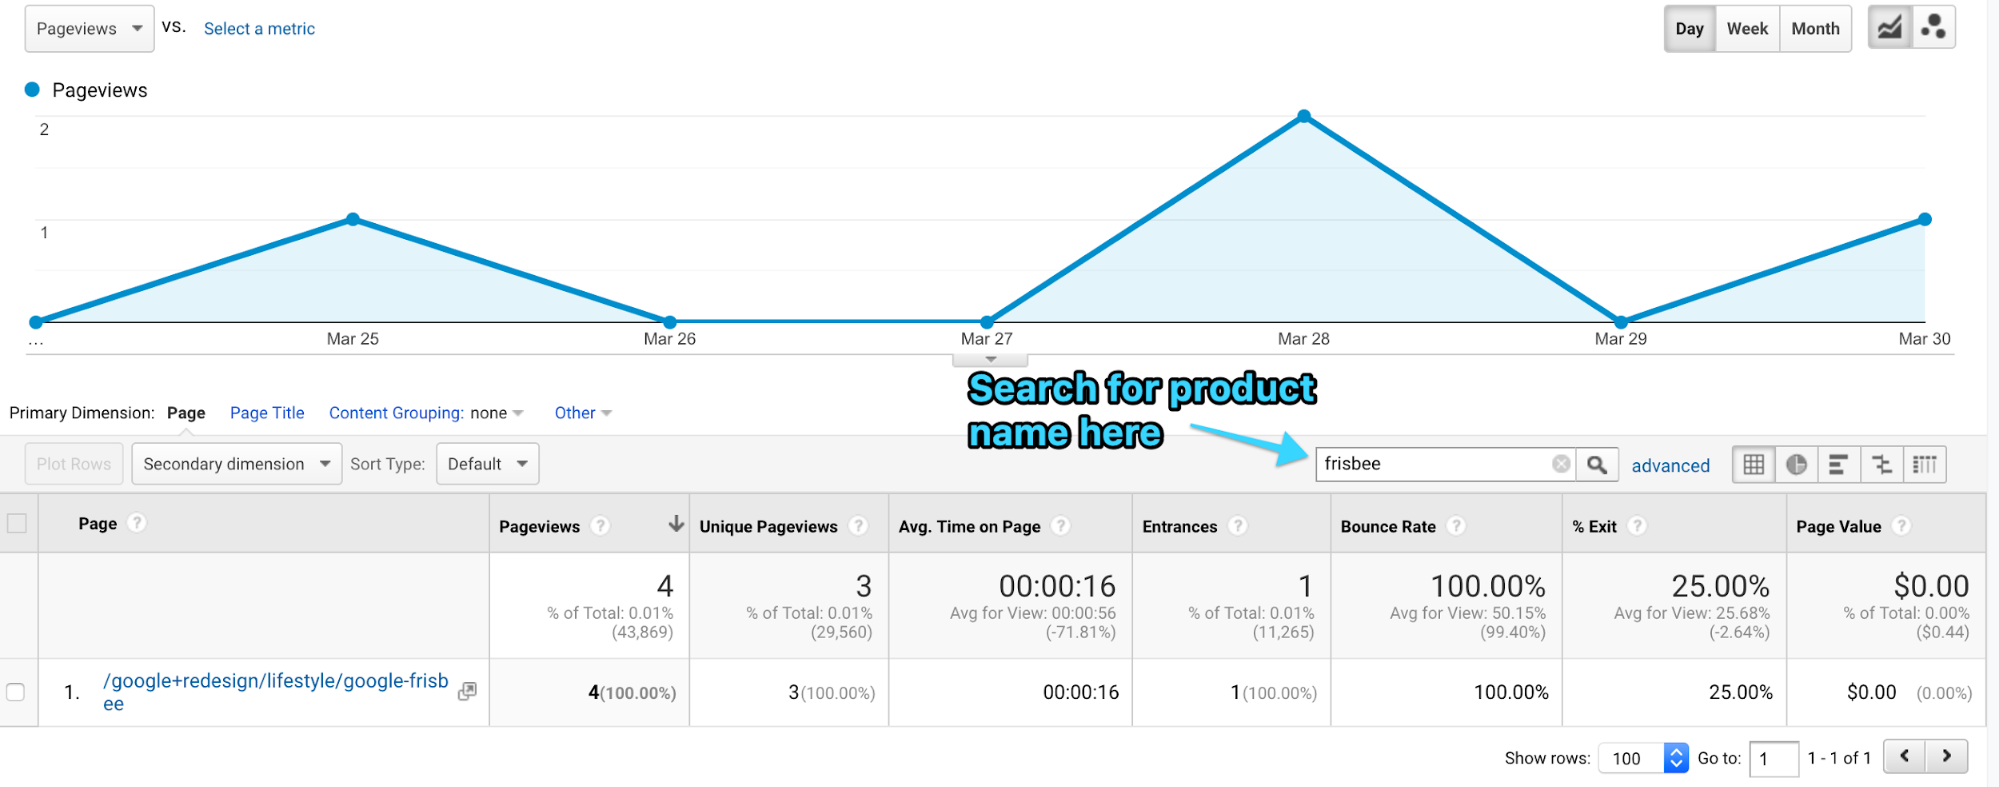 Measure Product page views tracked in Google Analytics